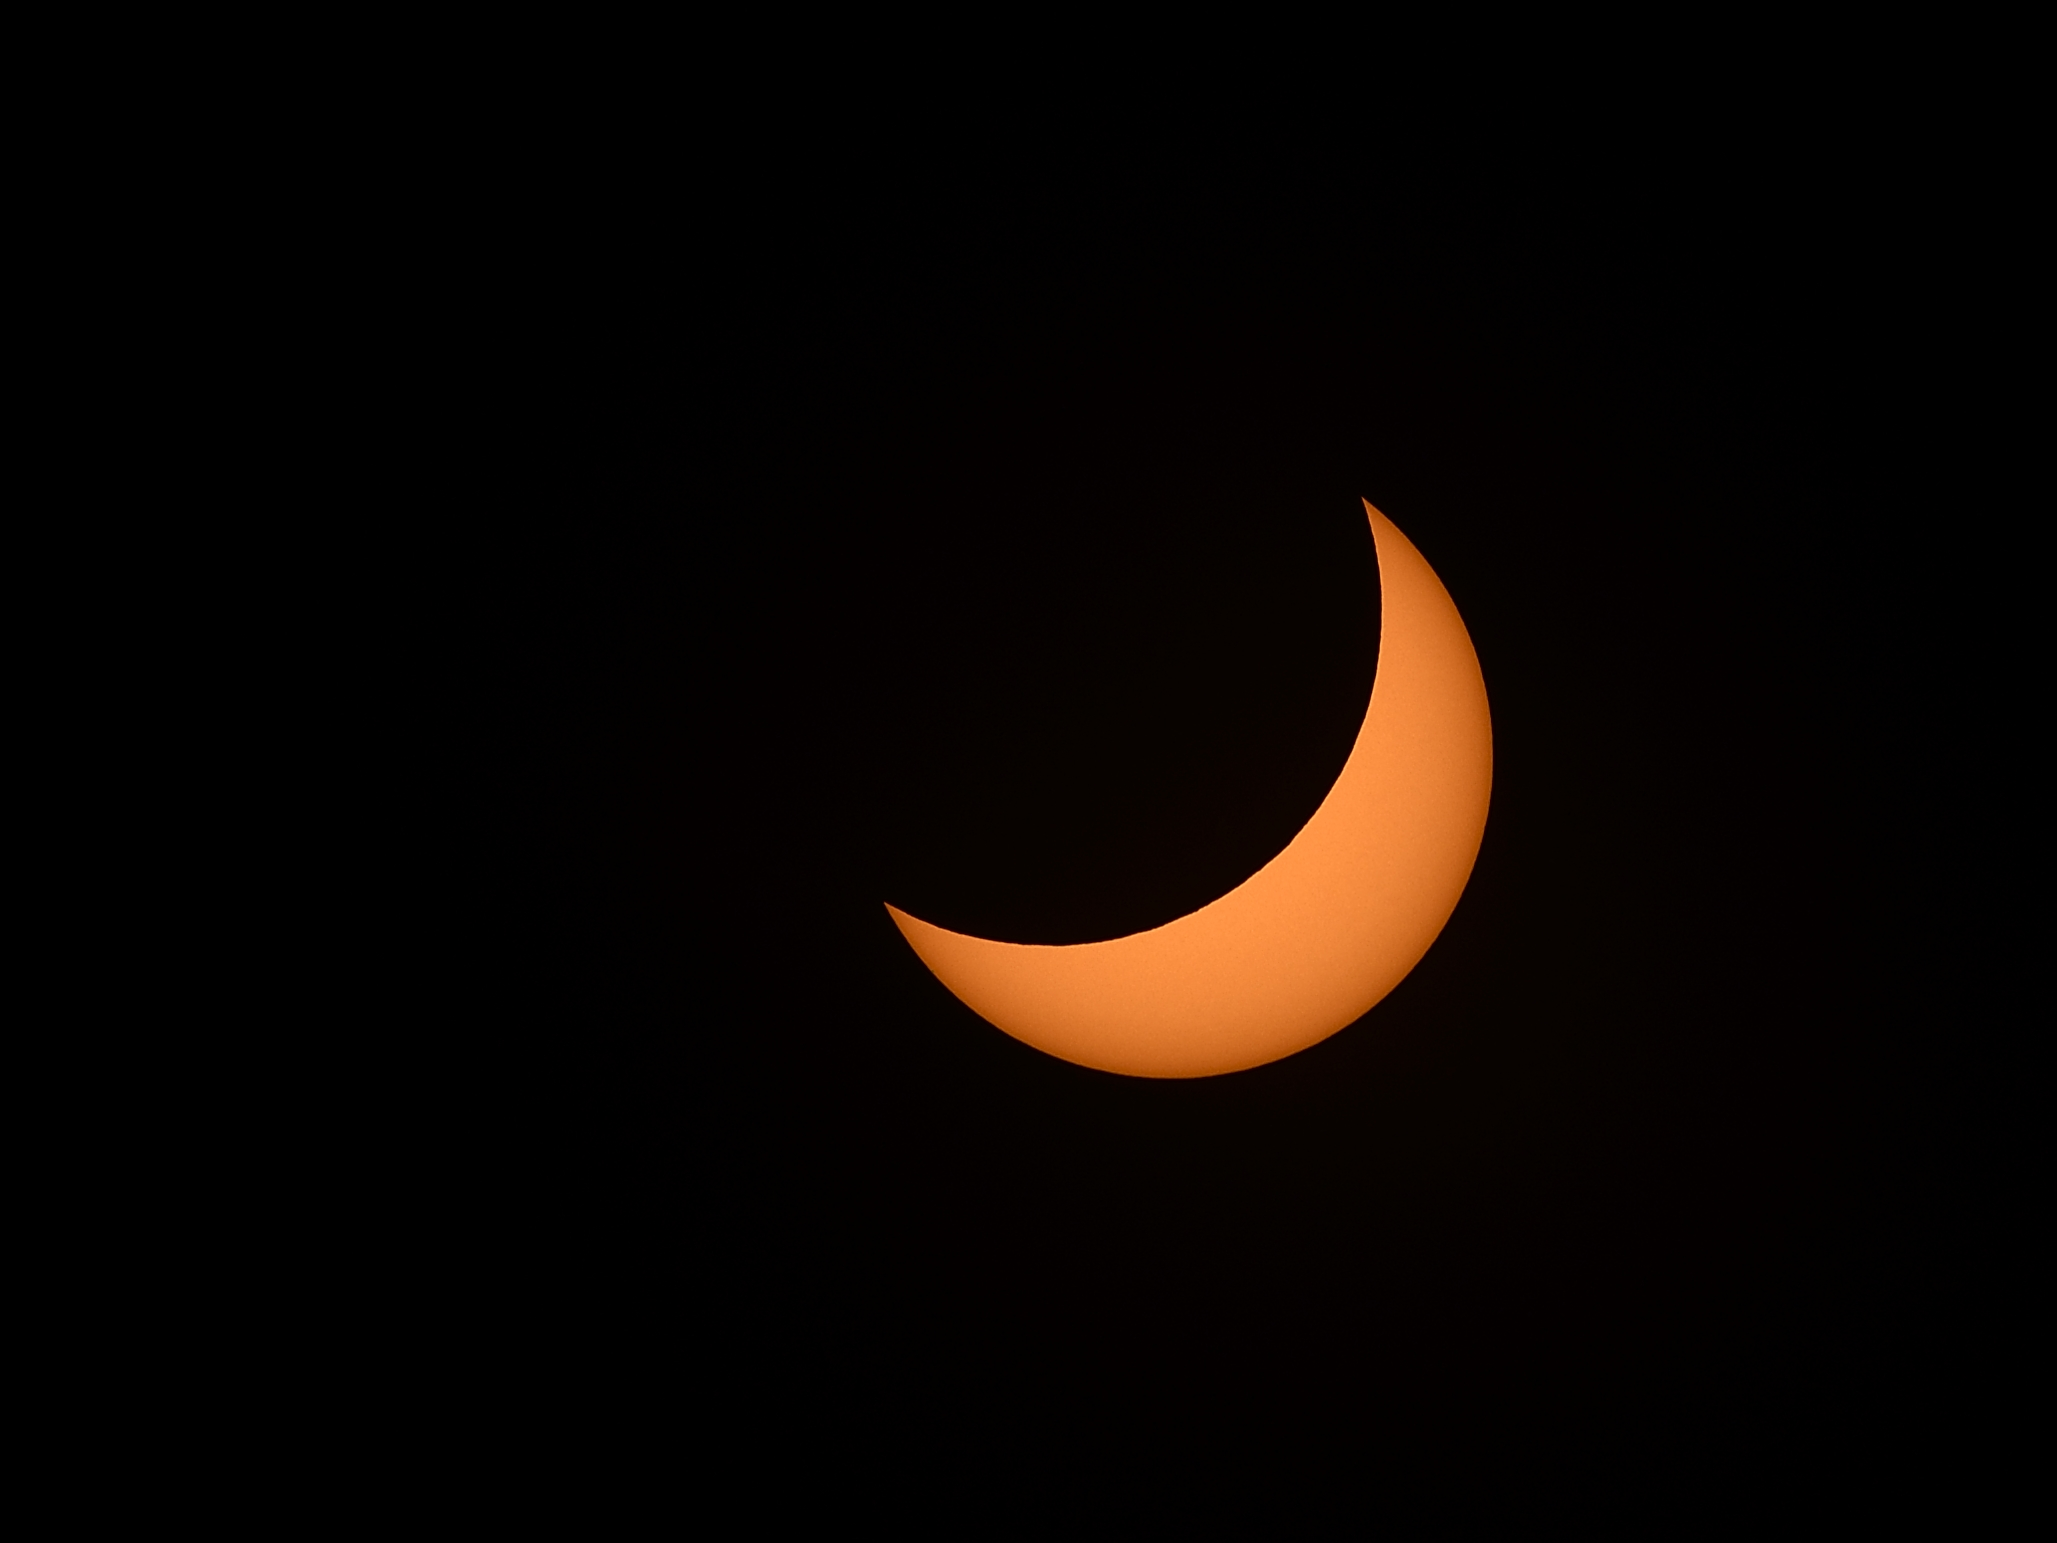 JVSmith_170821_Solar Eclipse Houston_104.jpg